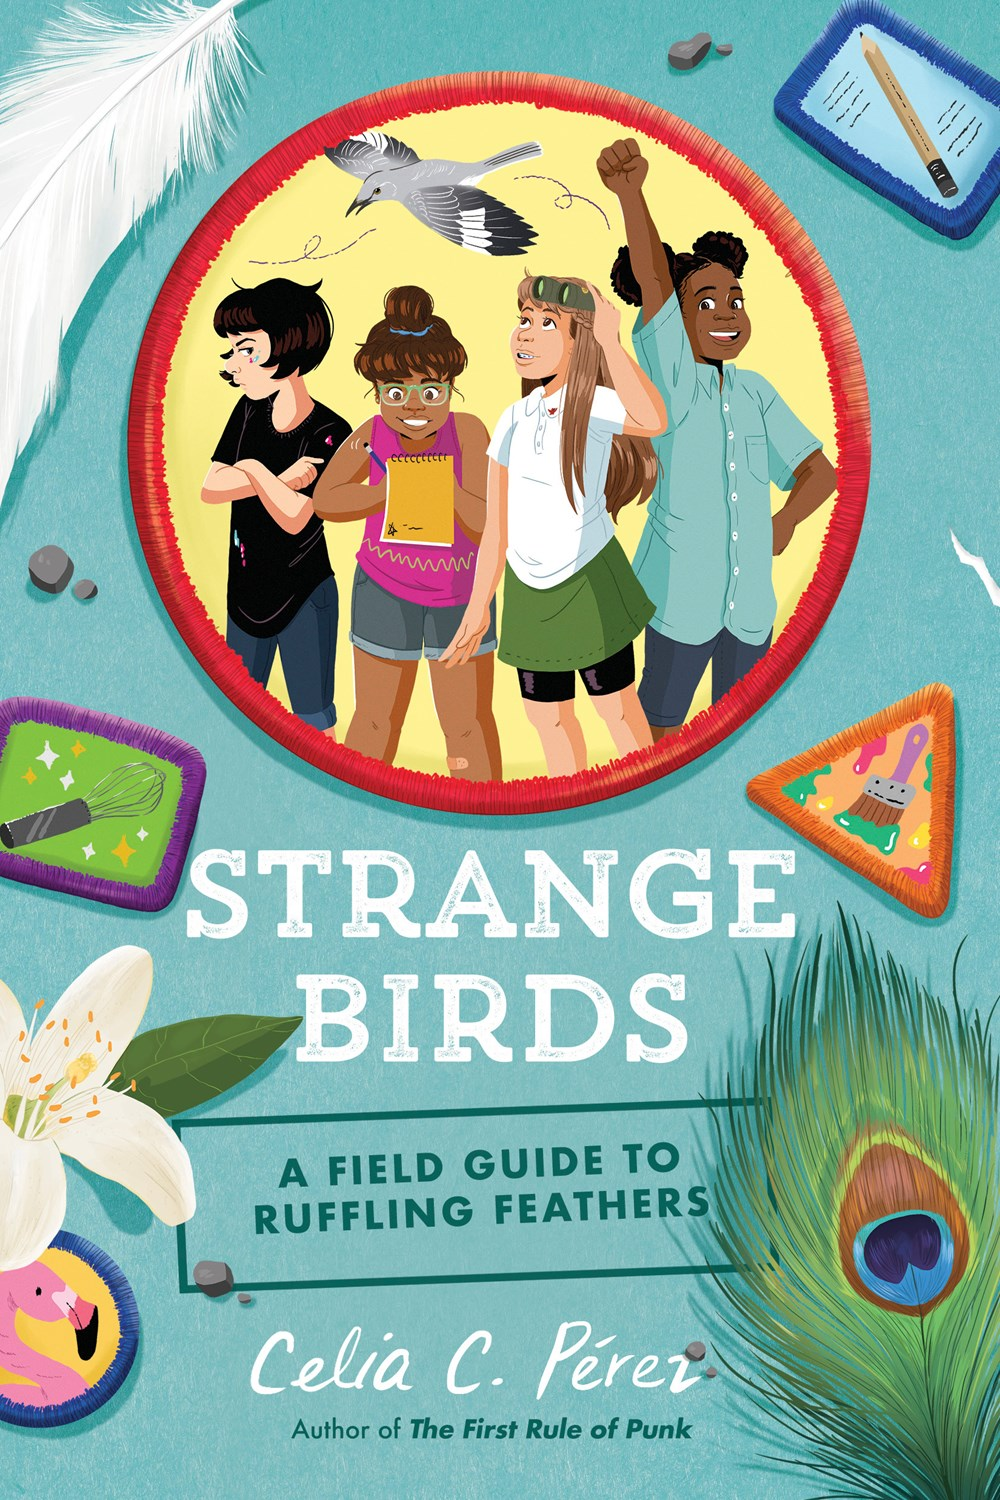 Review of Strange Birds: A Field Guide to Ruffling Feathers